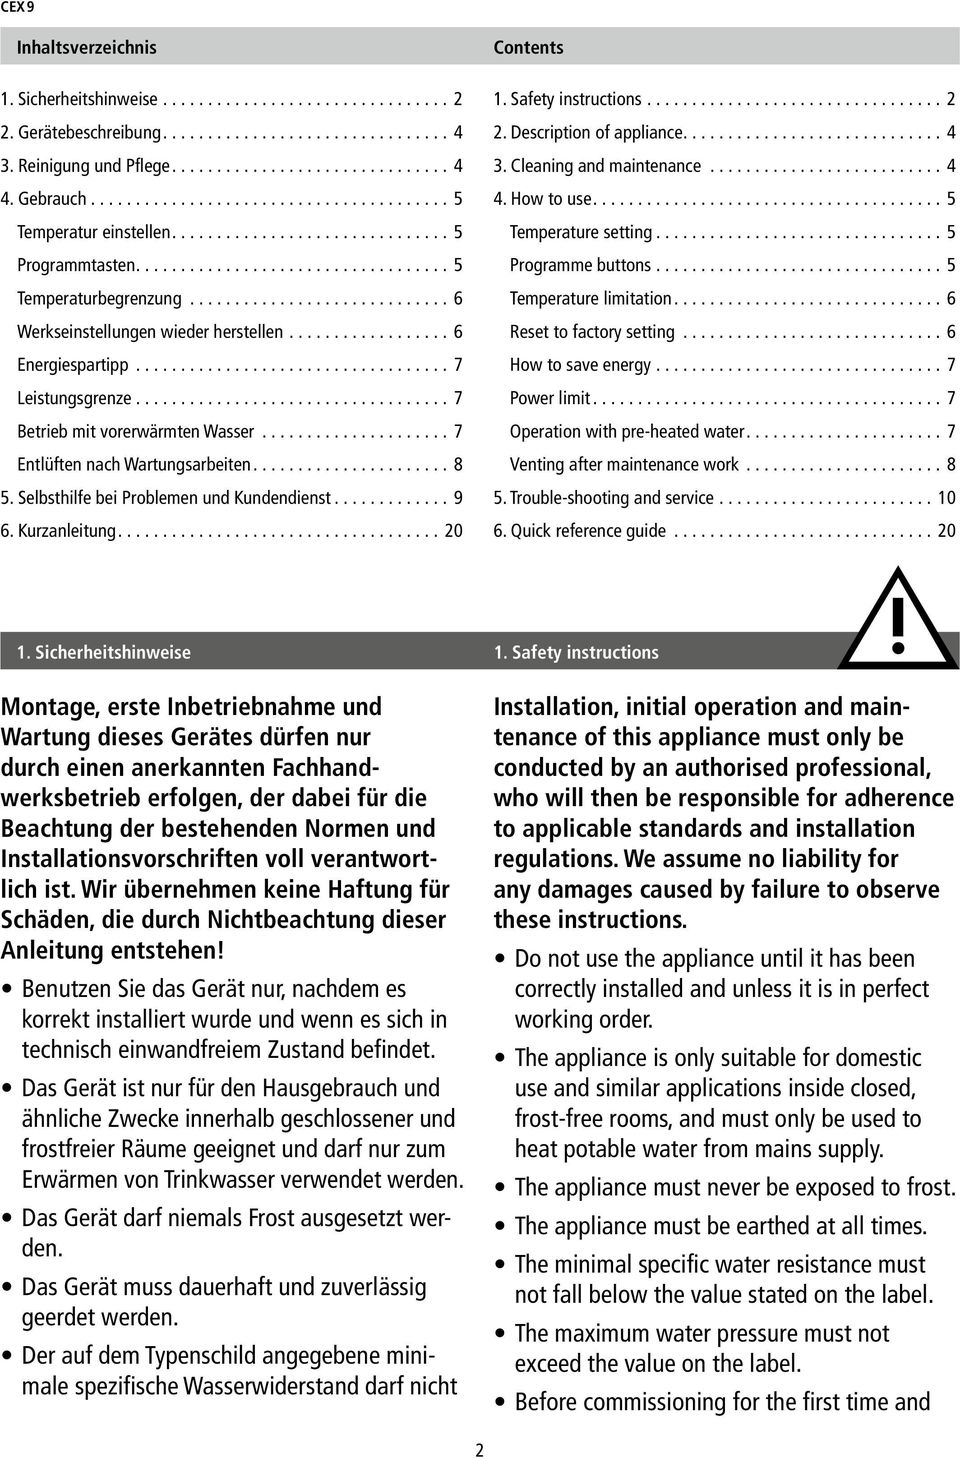 Selbsthilfe bei Problemen und Kundendienst... 9 6. Kurzanleitung... 20 Contents. Safety instructions... 2 2. Description of appliance... 4 3. Cleaning and maintenance... 4 4. How to use.